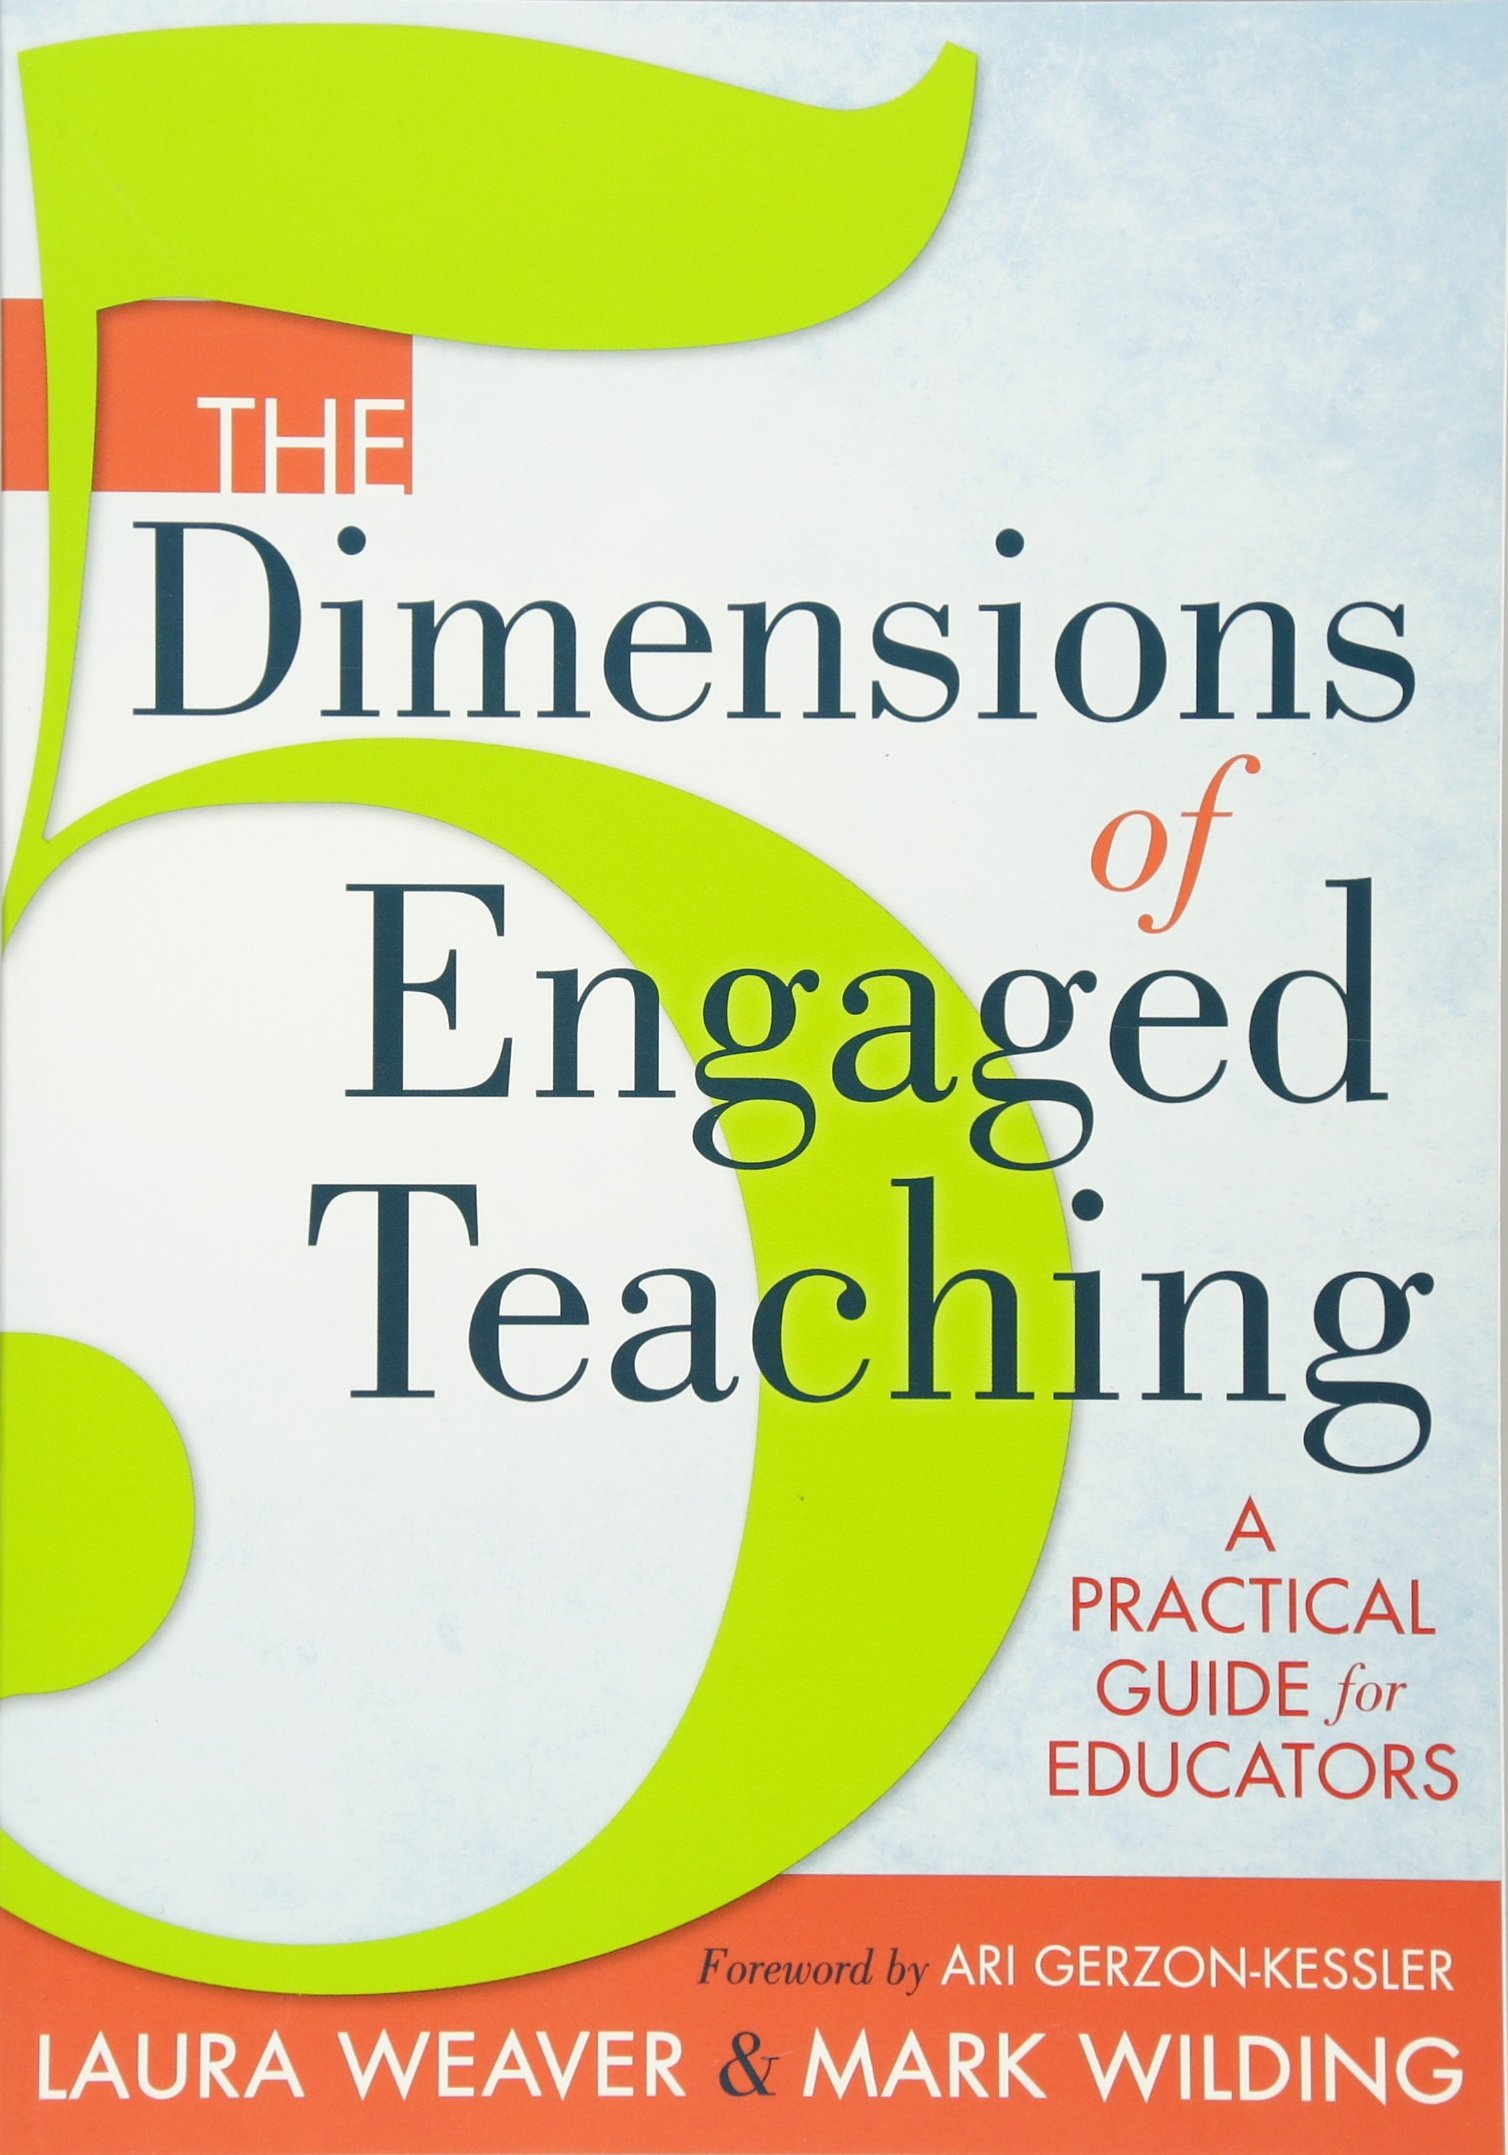 The 5 Dimensions of Engaged Teaching: A Practical Guide for Educators pdf